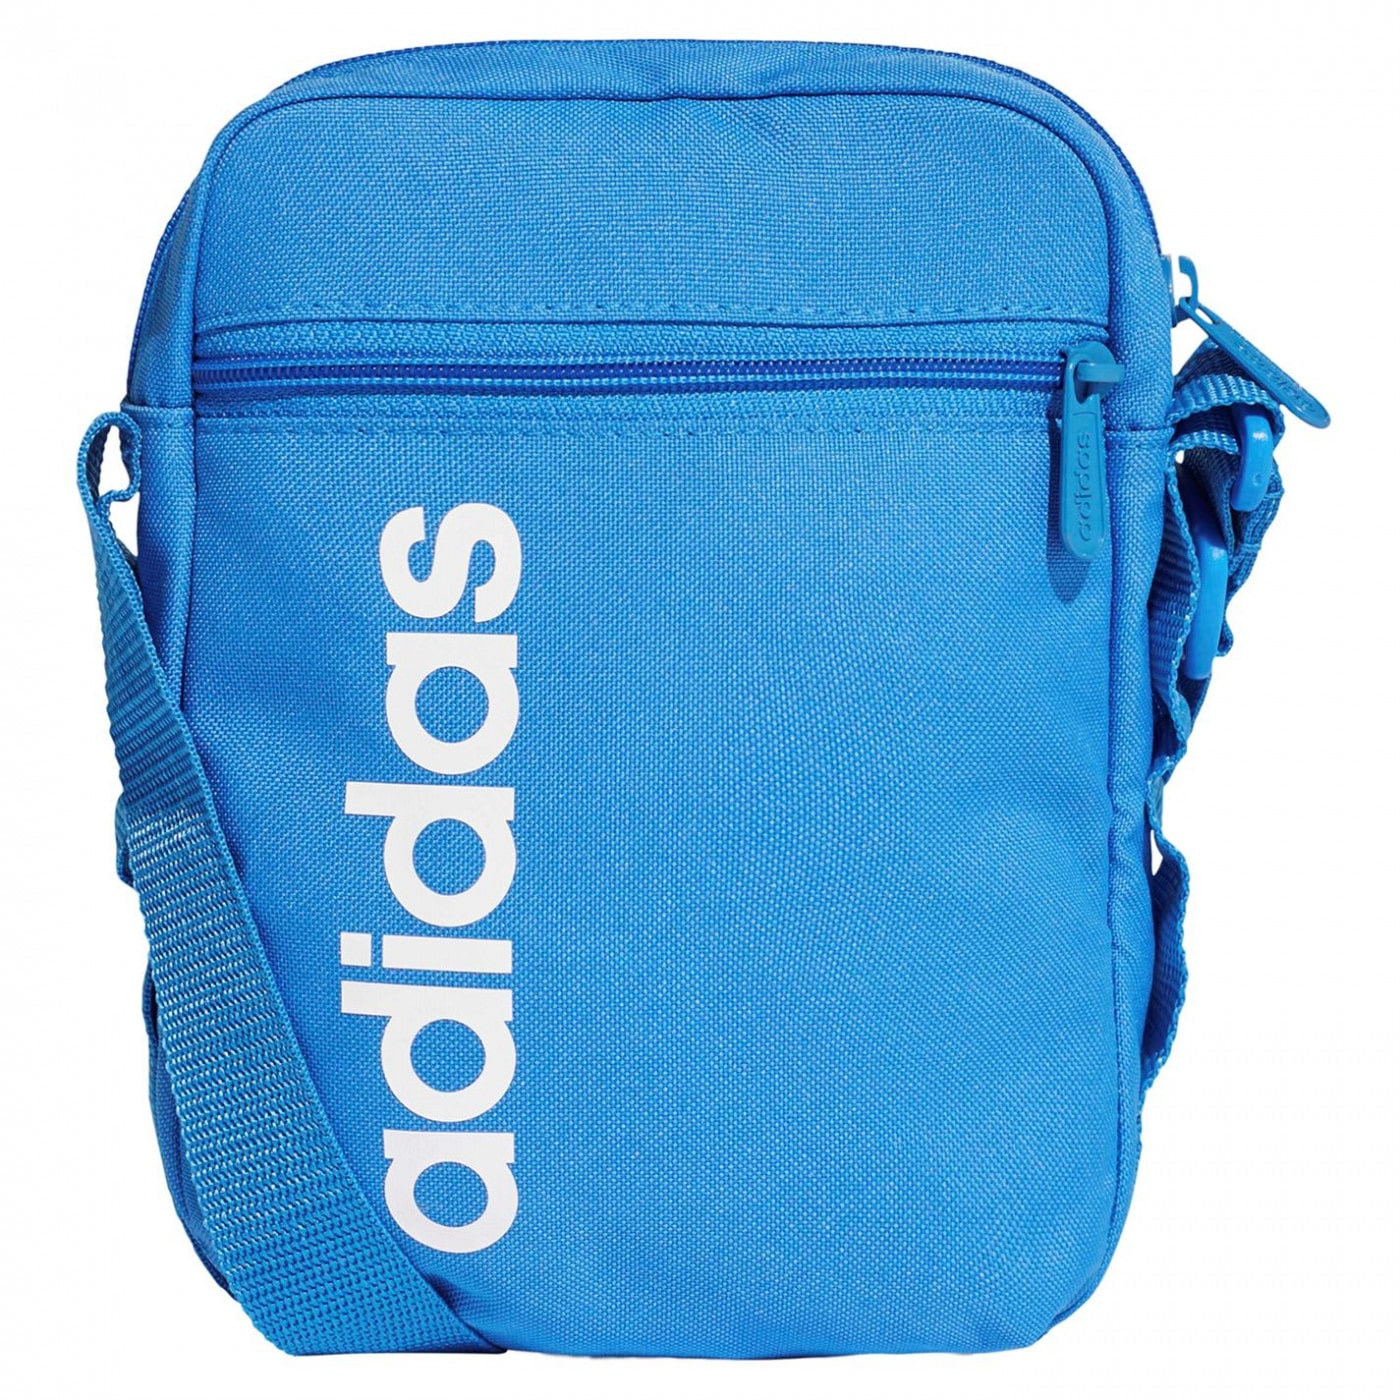 Adidas Linear Core Men's Organizer Bag